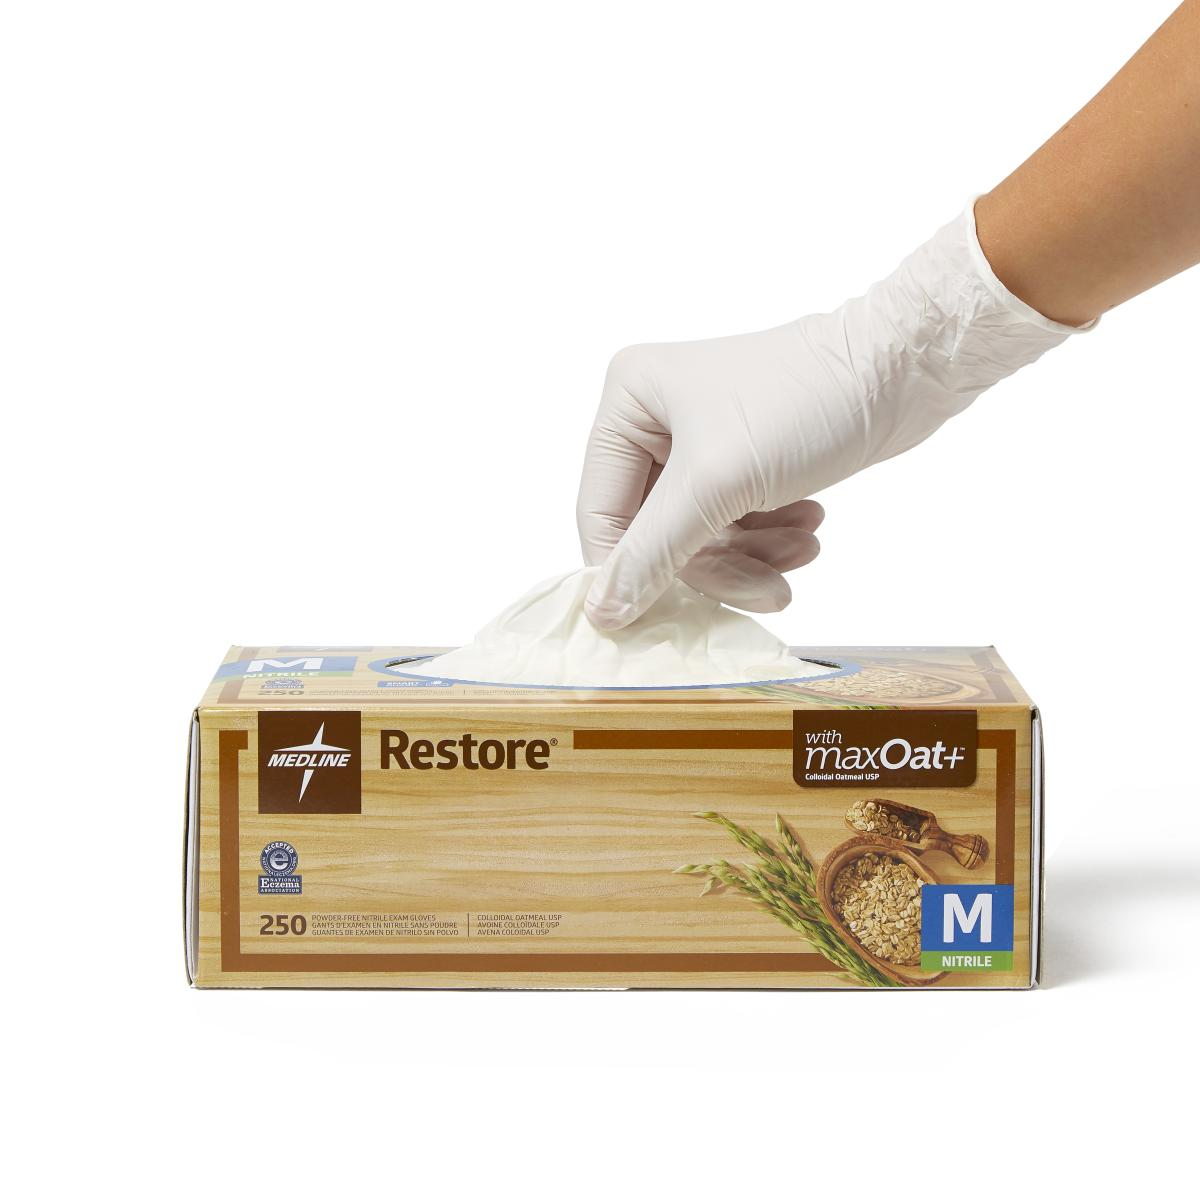 Restore Powder-Free Nitrile Exam Gloves with Oatmeal